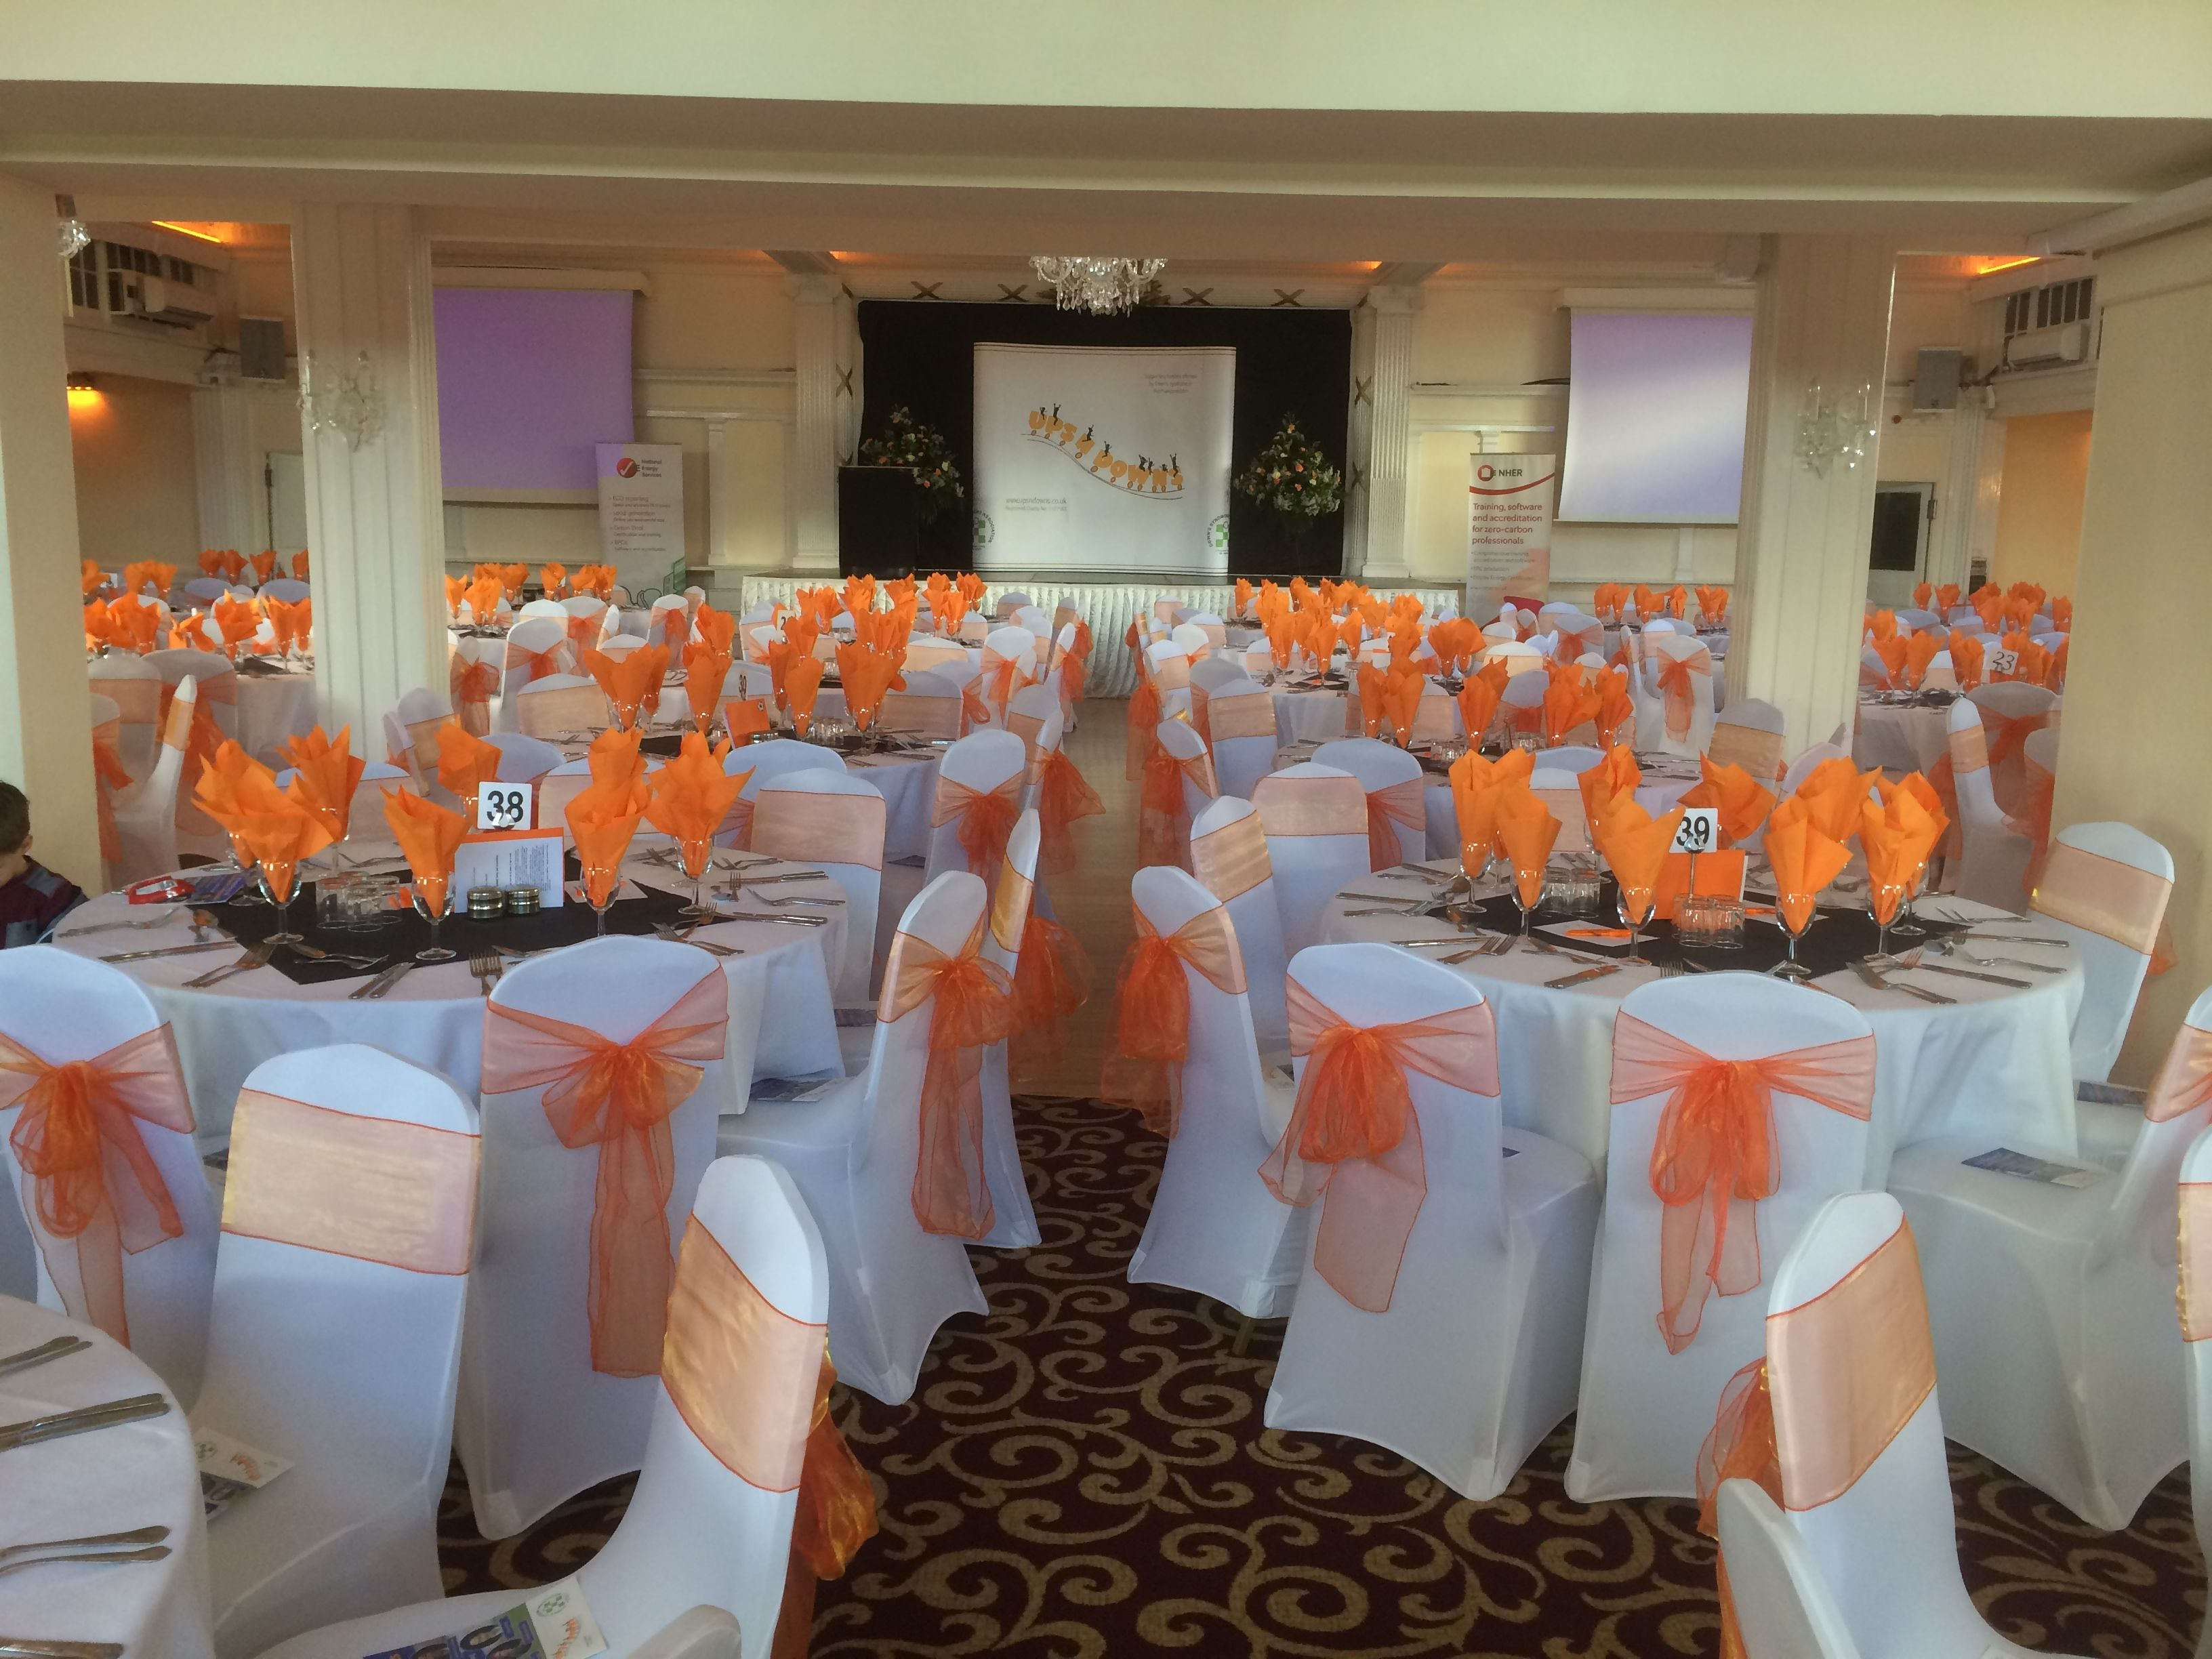 chair covers hire in wolverhampton unfinished childs rocking beautiful white with coral orange organza sashes wicksteed park kettering corporate event